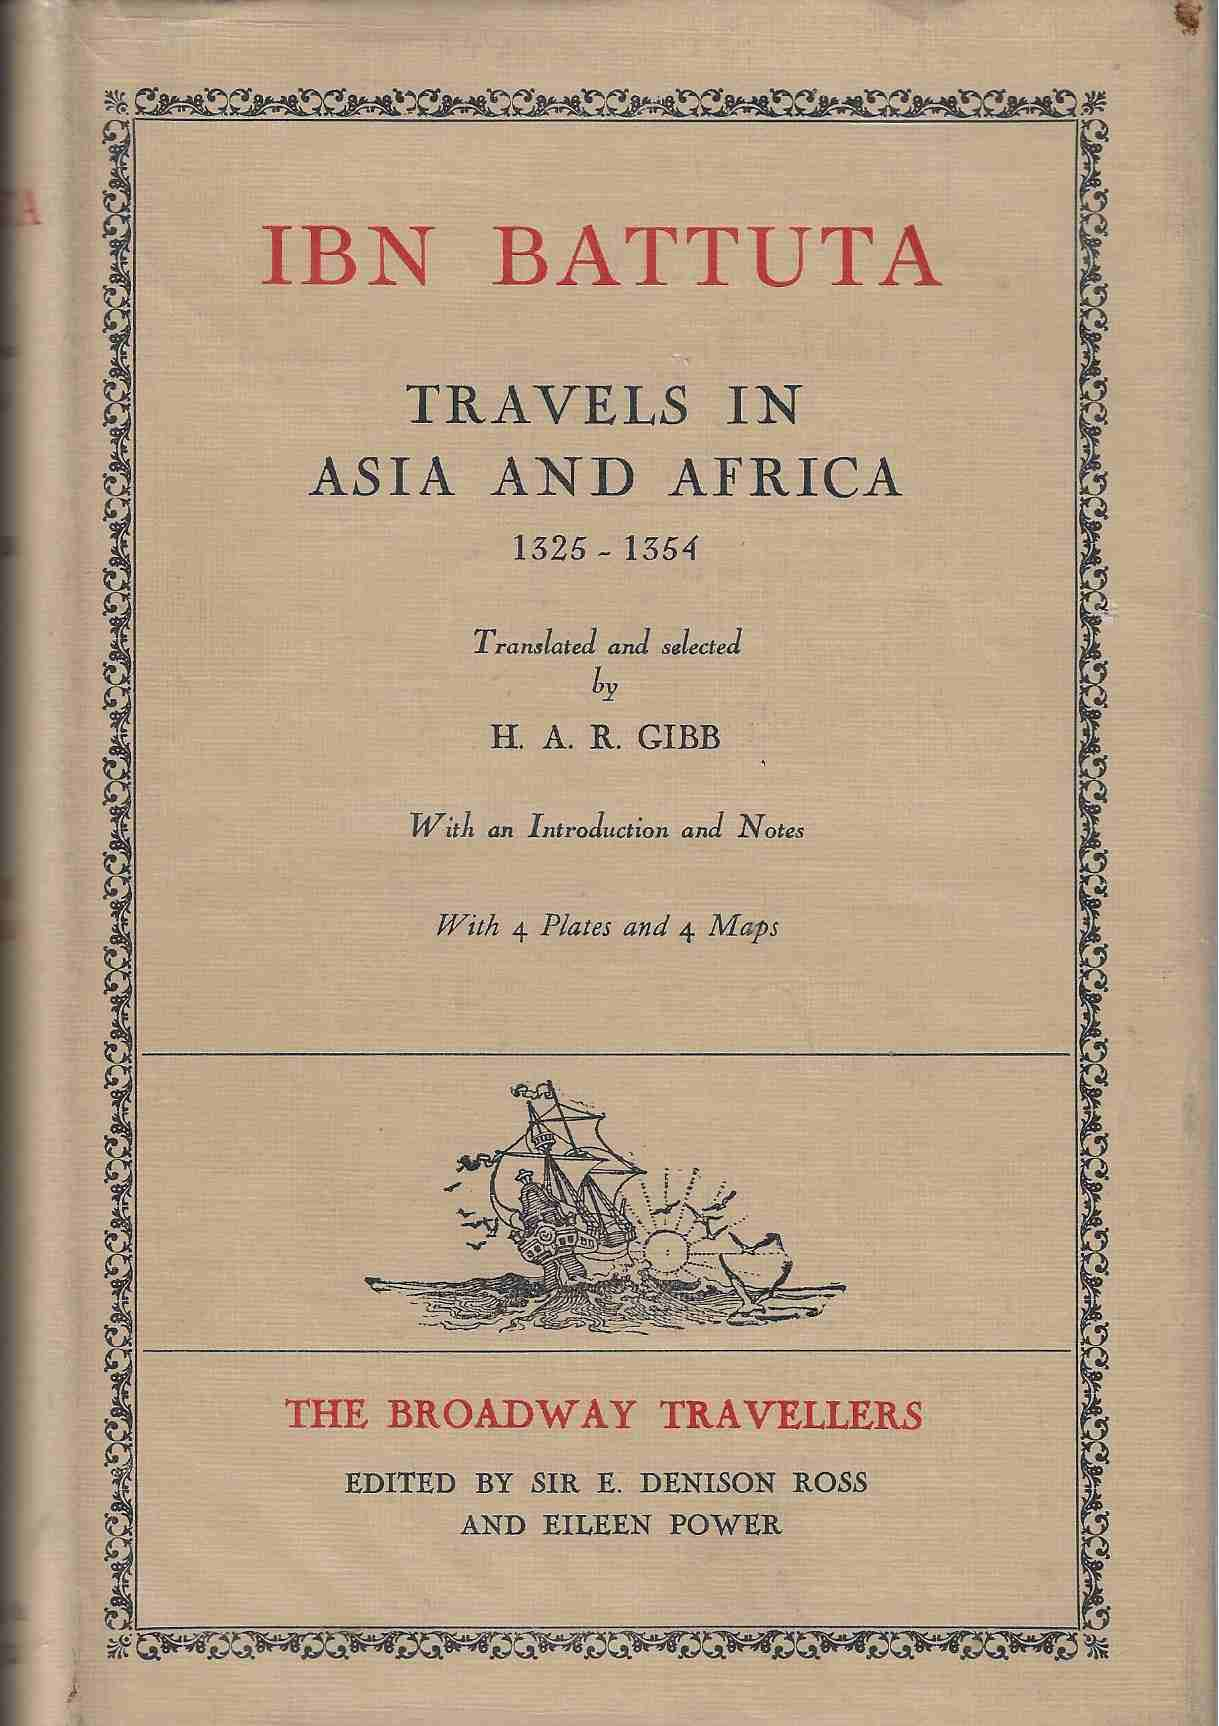 Image for Ibn Battta Travels in Asia and Africa, 1325-1354 Translated & Selected by H. A. R. Gibb